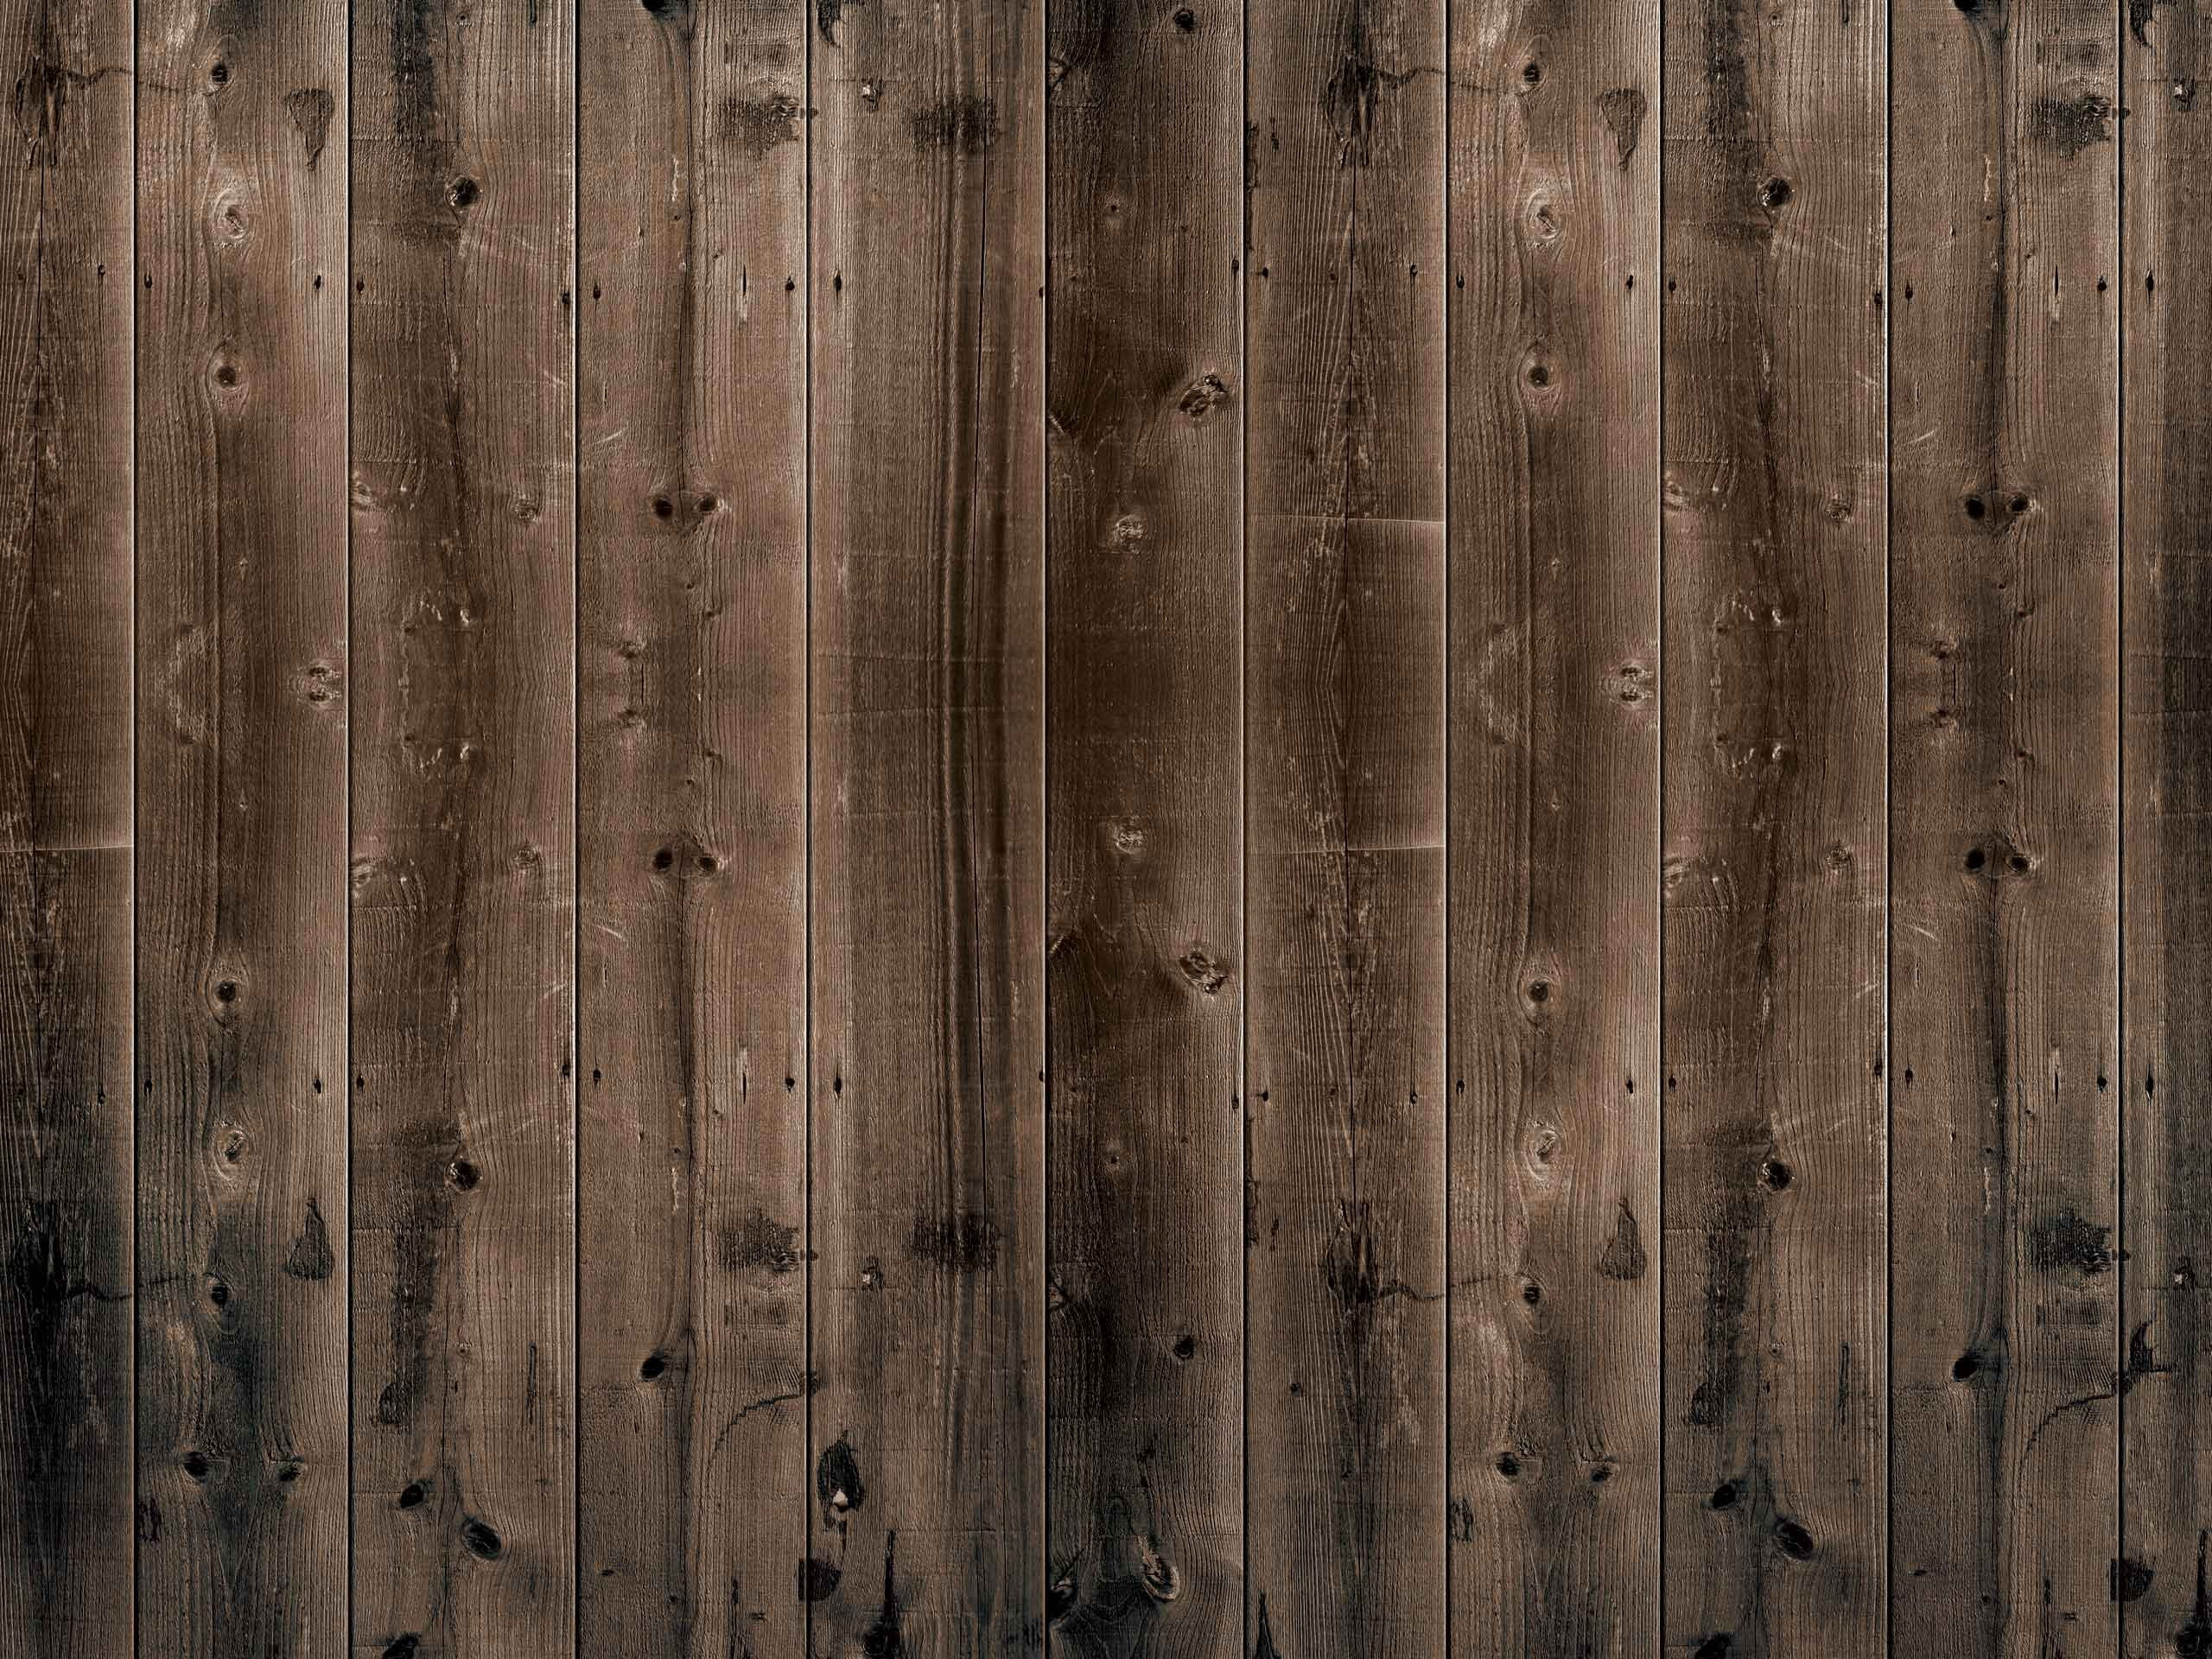 Rustic Wood Plank Wallpaper 36 Images